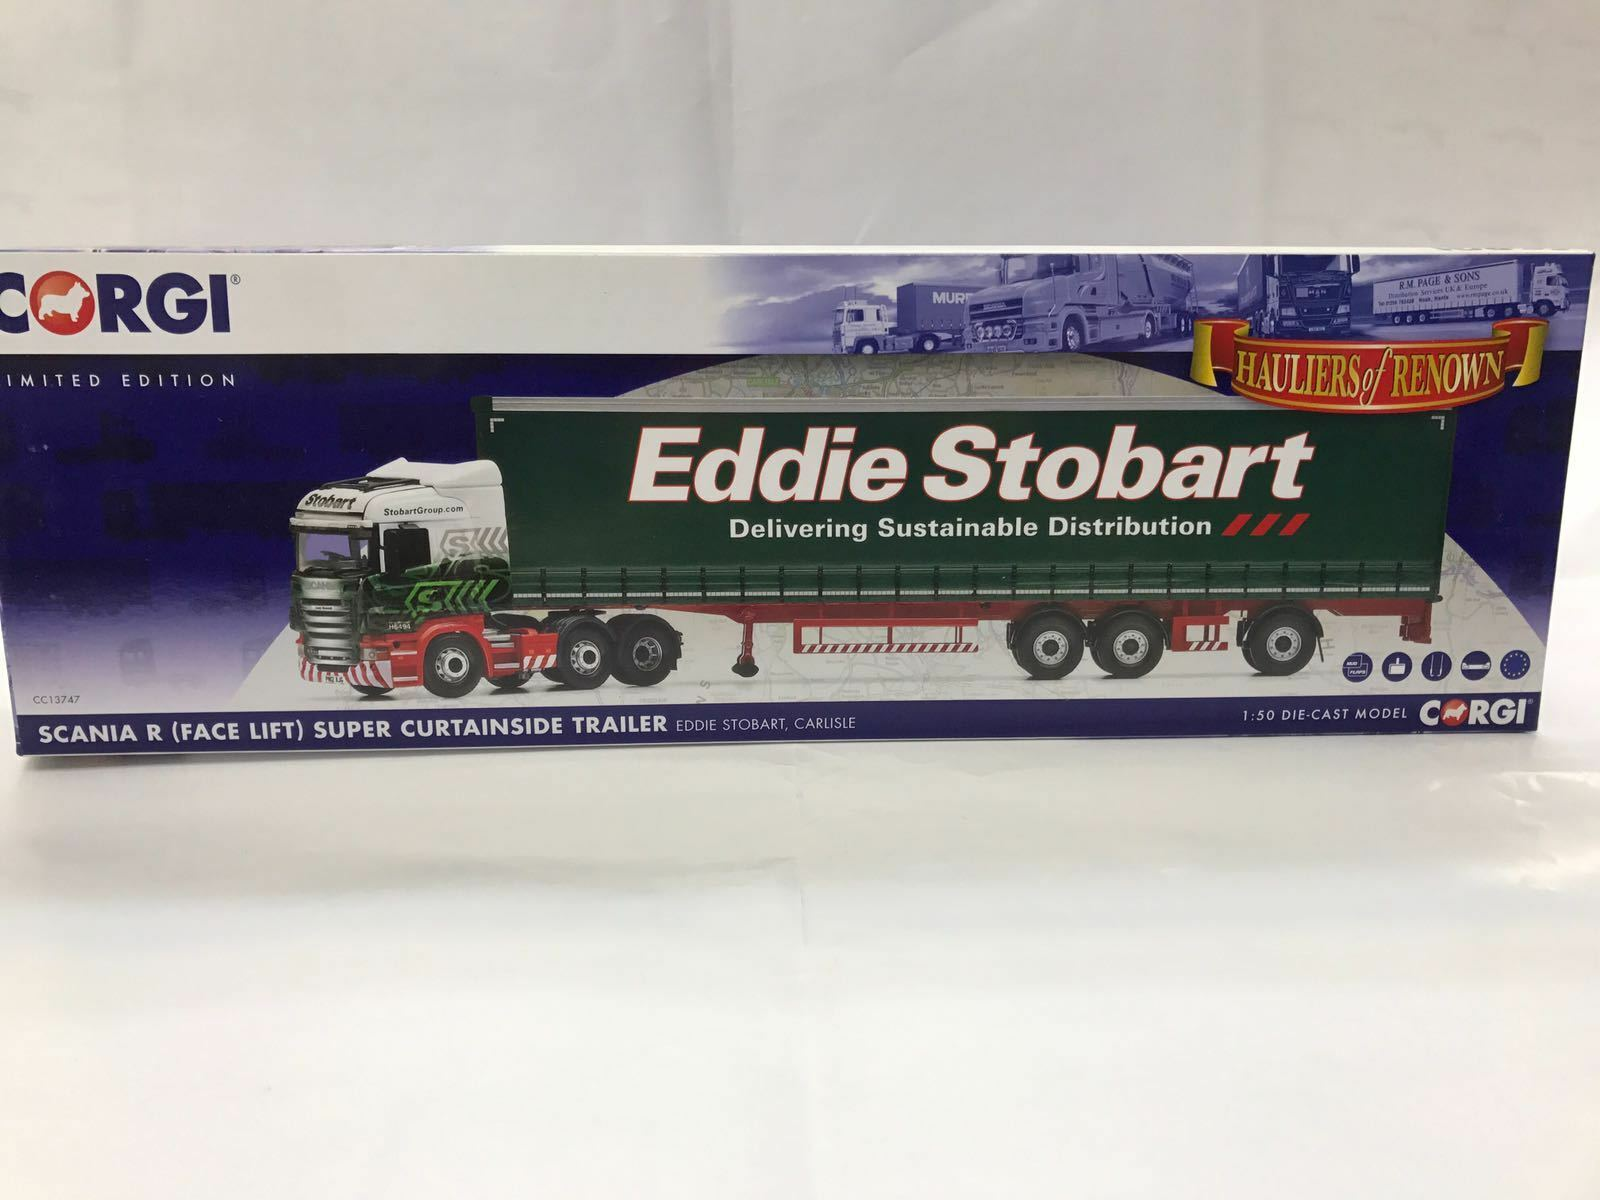 Corgi CC13747, Scania R (Face Lift) Lift) Lift) Super Curtainside Trailer, Eddie Stobart 390b89